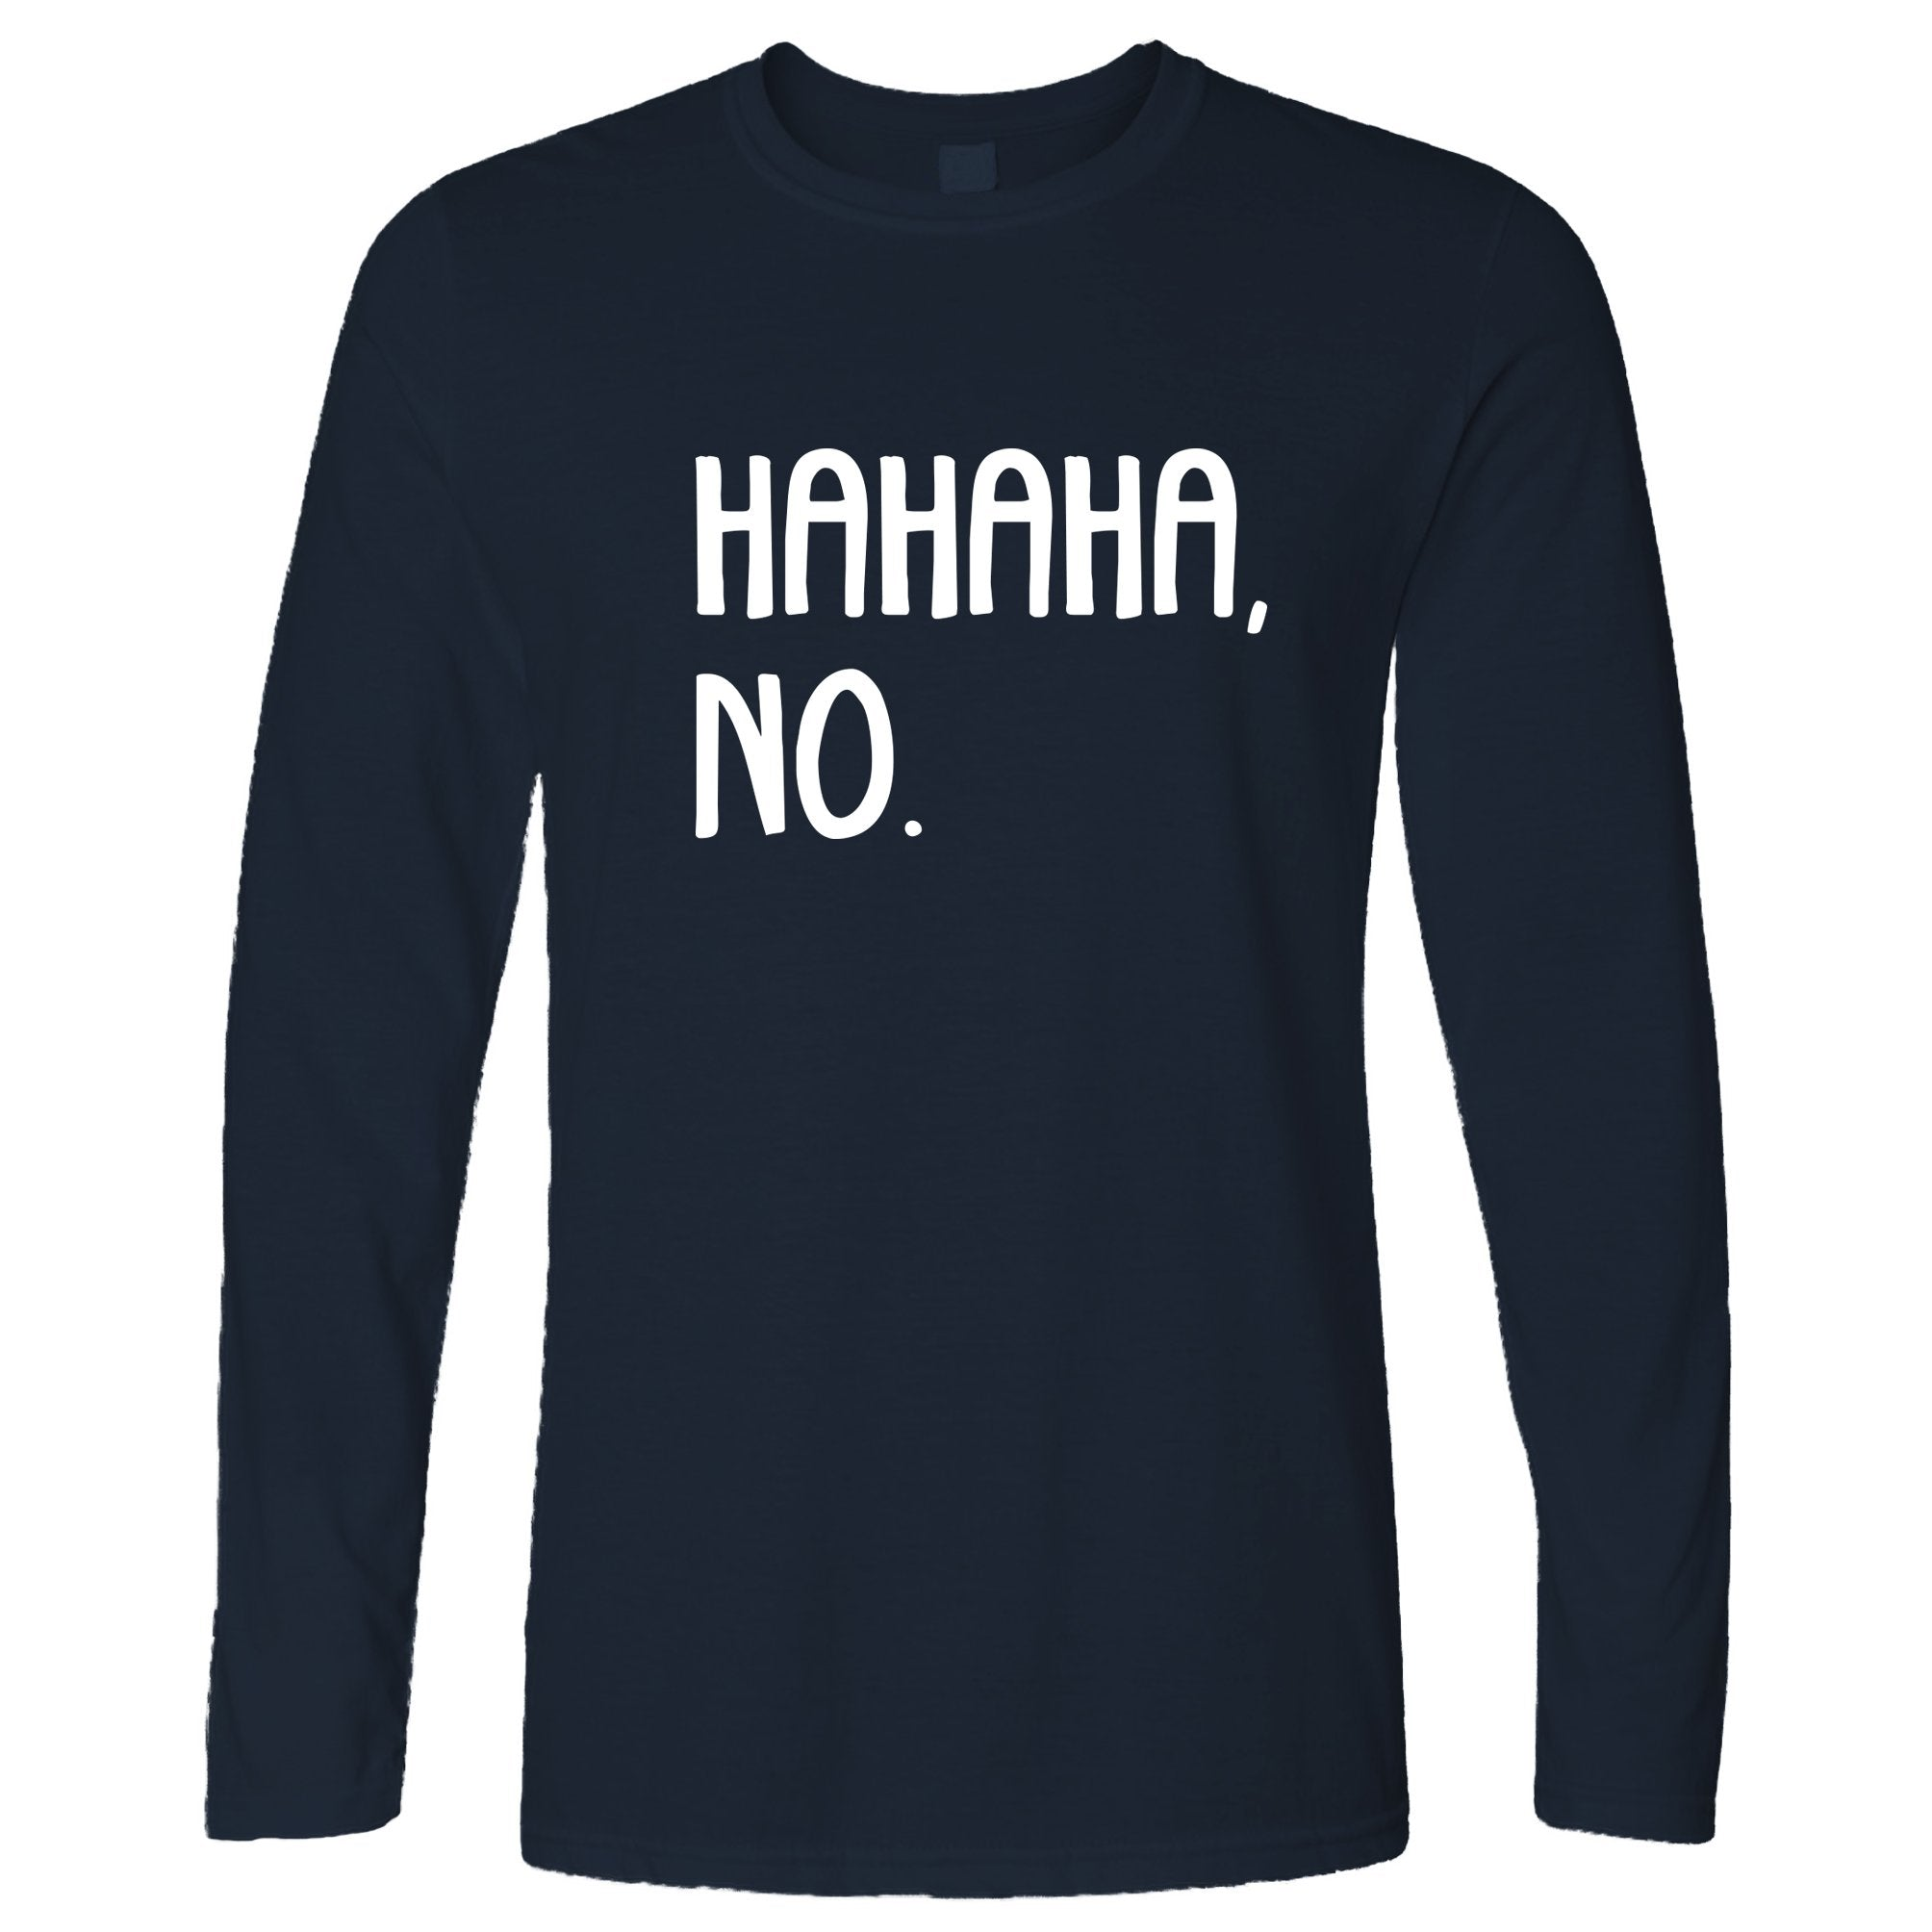 Novelty Teen Long Sleeve HAHAHA, No. Sassy Slogan T-Shirt